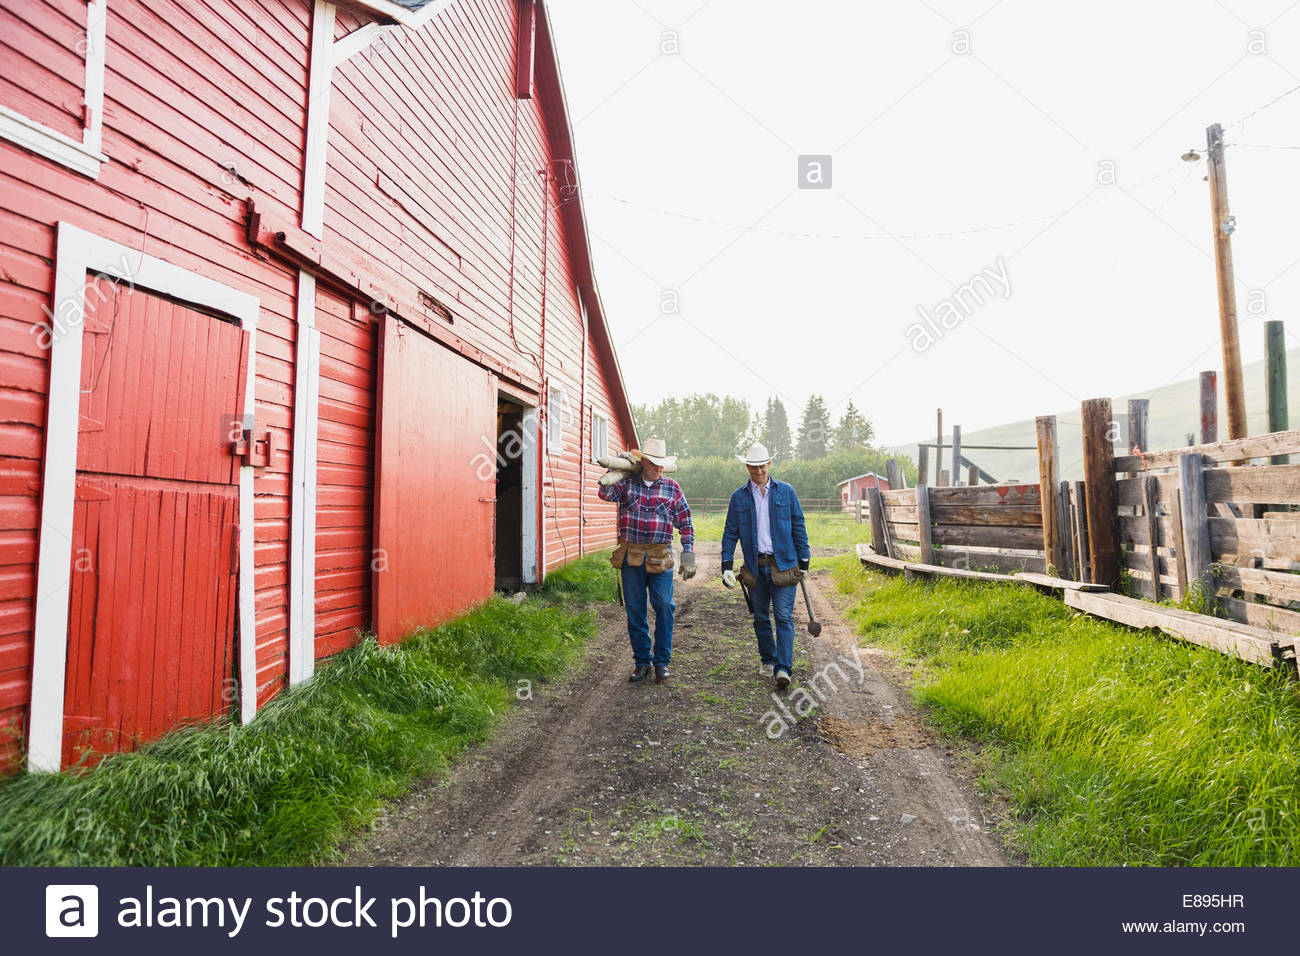 Ranchers carrying fence posts along path outside barn - Stock Image